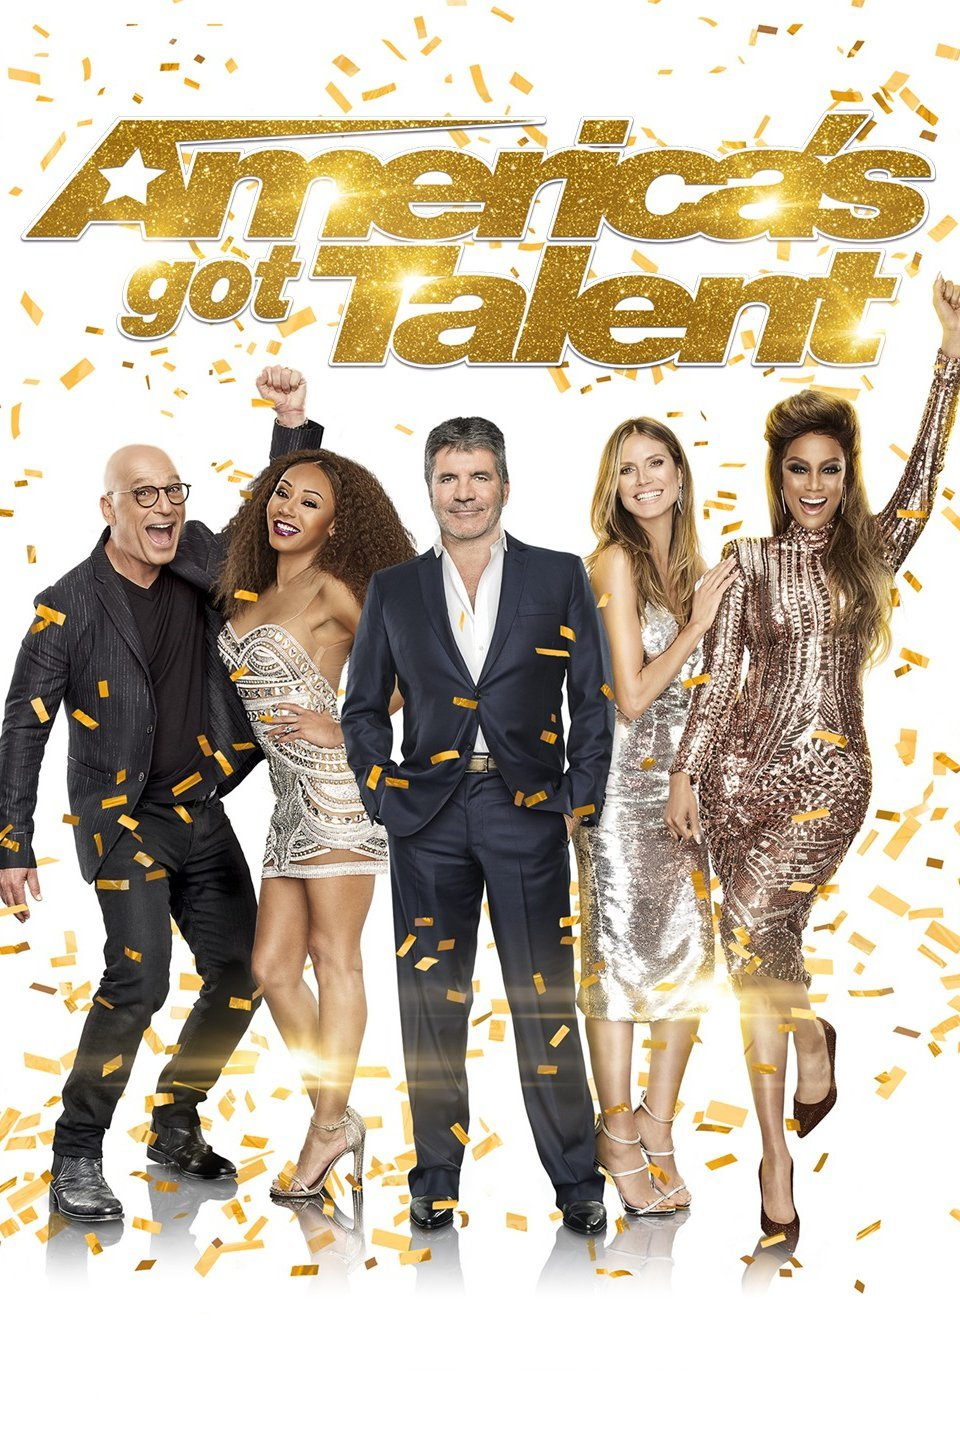 Americas Got Talent All Episodes [Full S10] Free Download